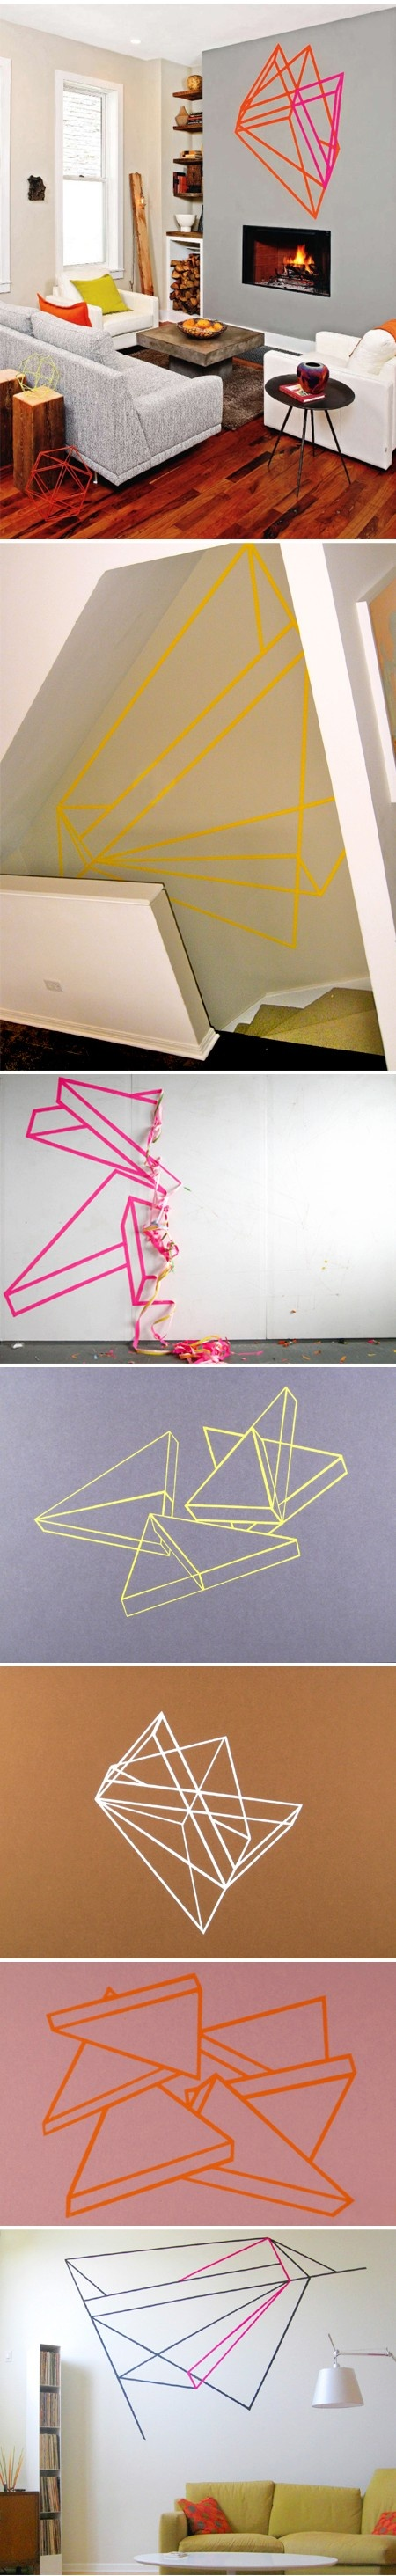 97 best DIY Wall Art images on Pinterest | Masking tape wall, Home ...